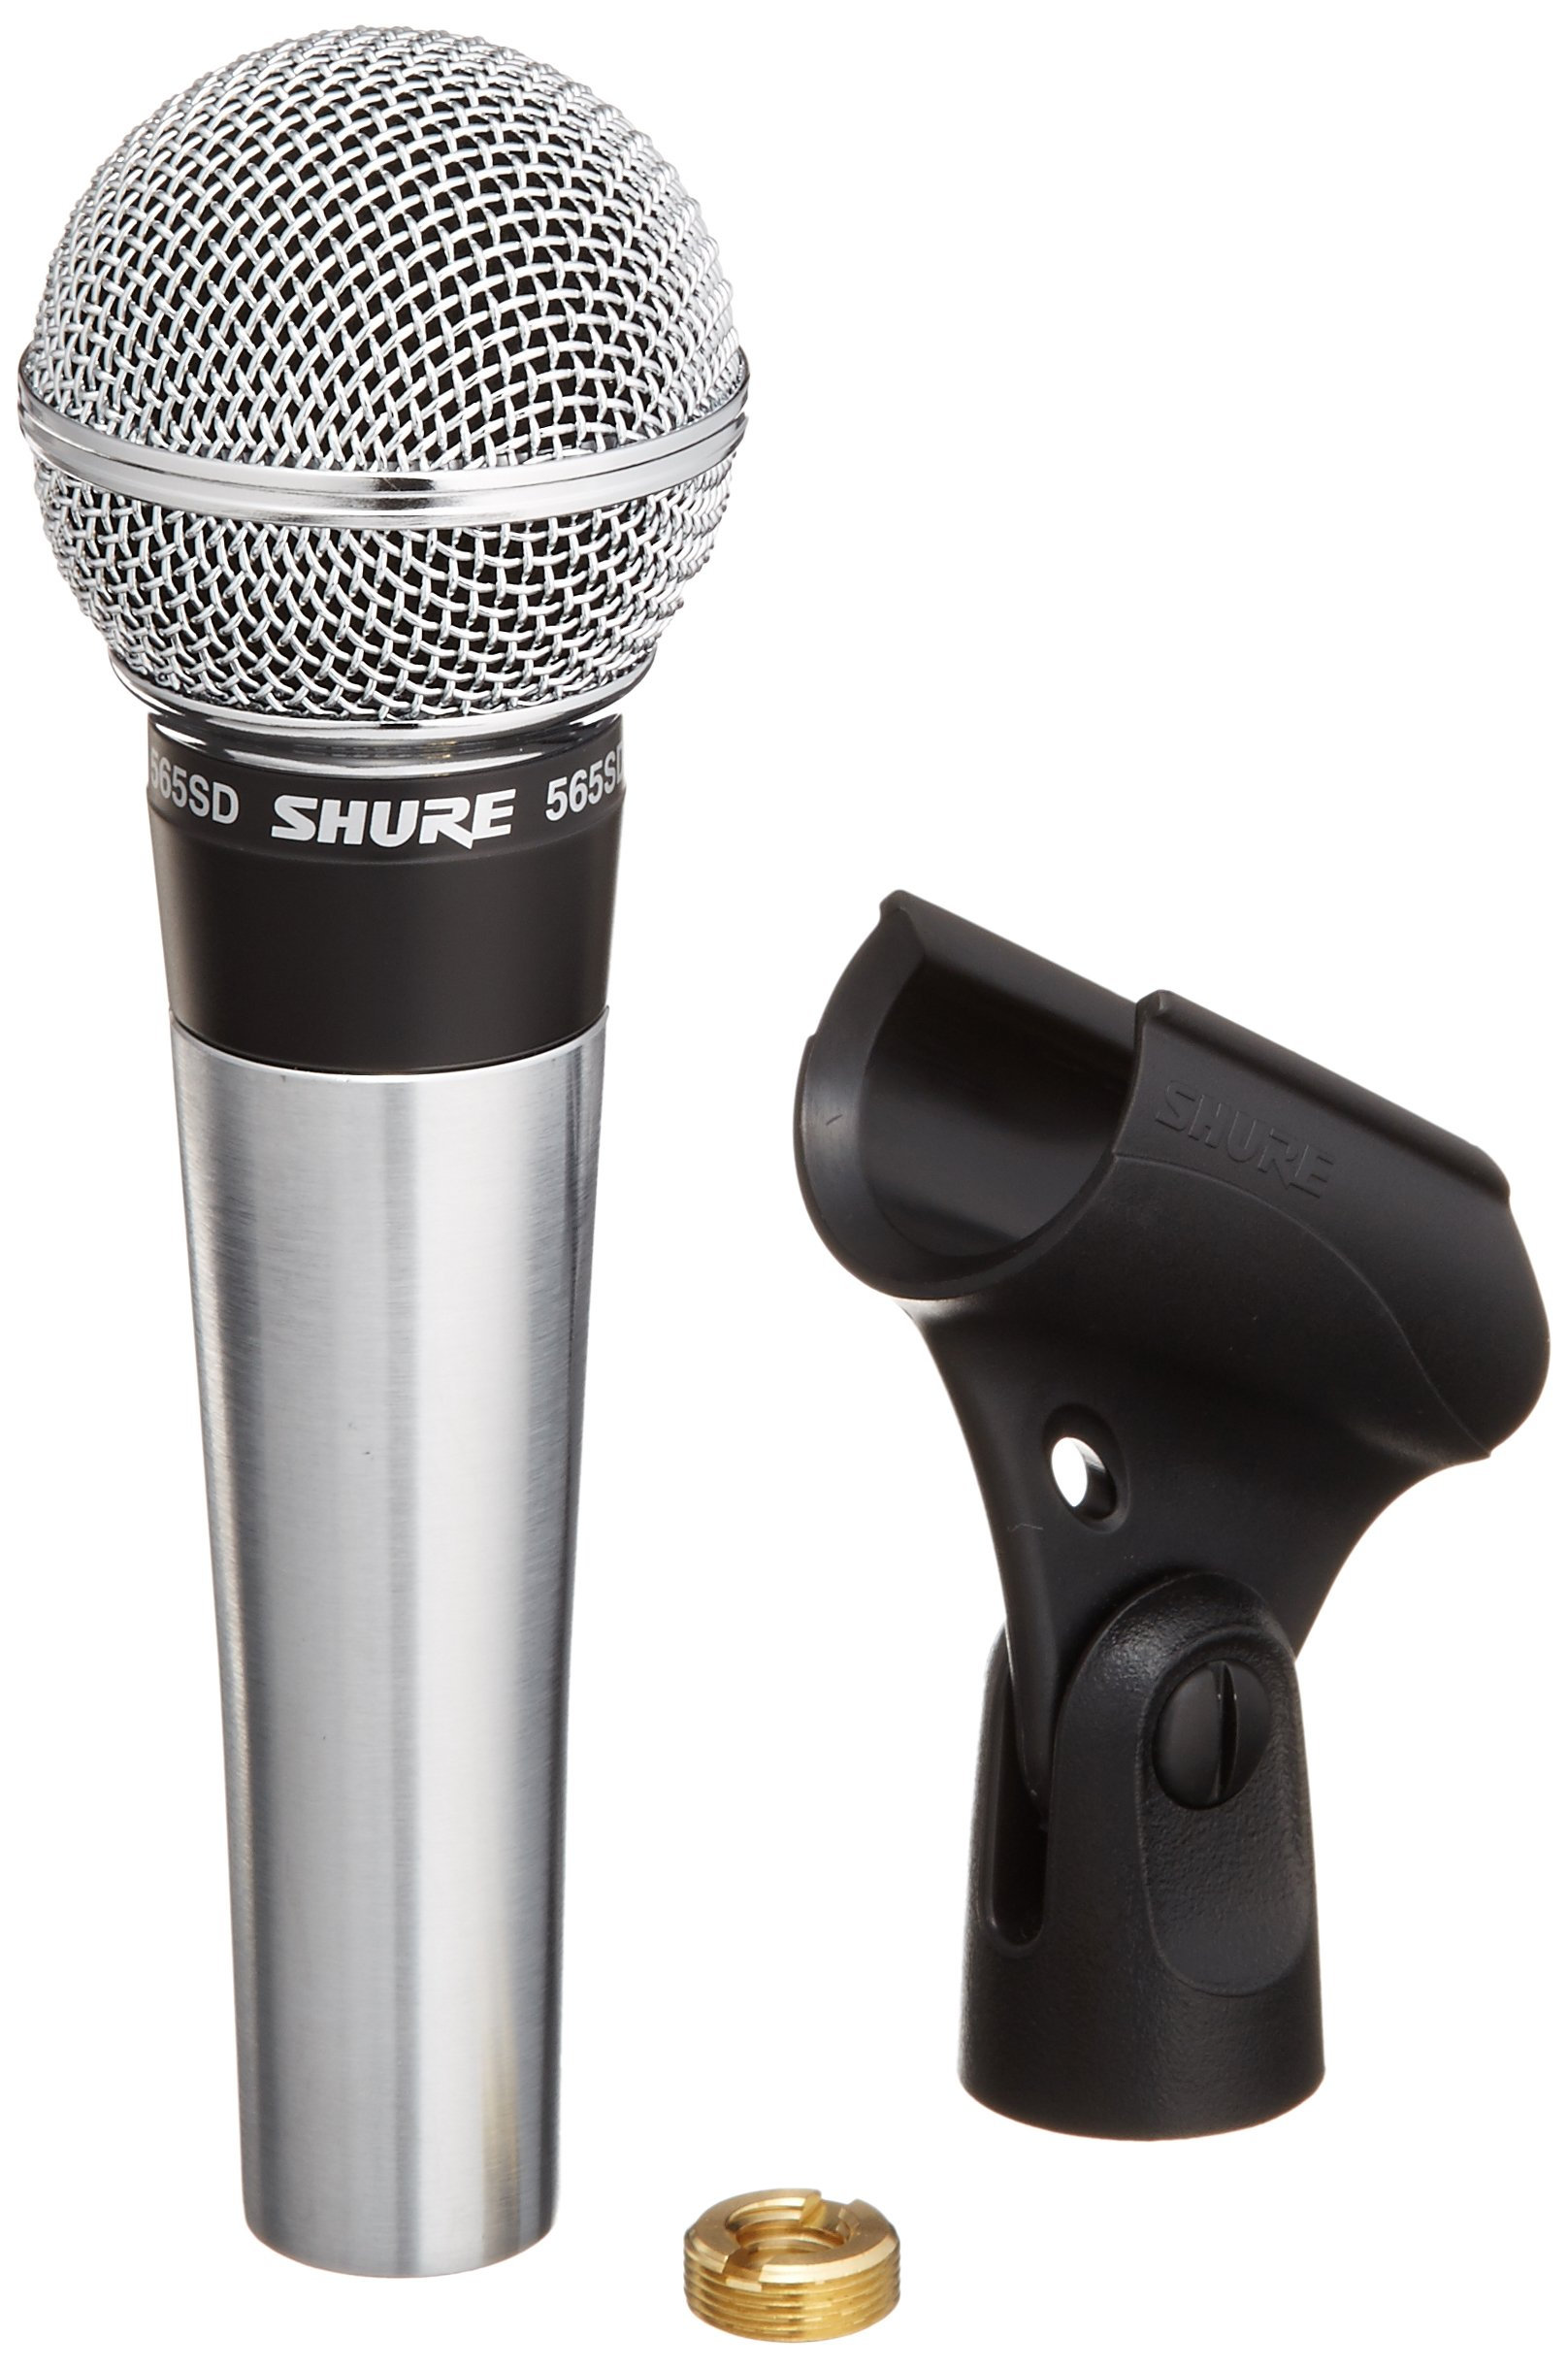 Microfono Shure 565sd-lc  Without Cable, Silent Magnetic ..